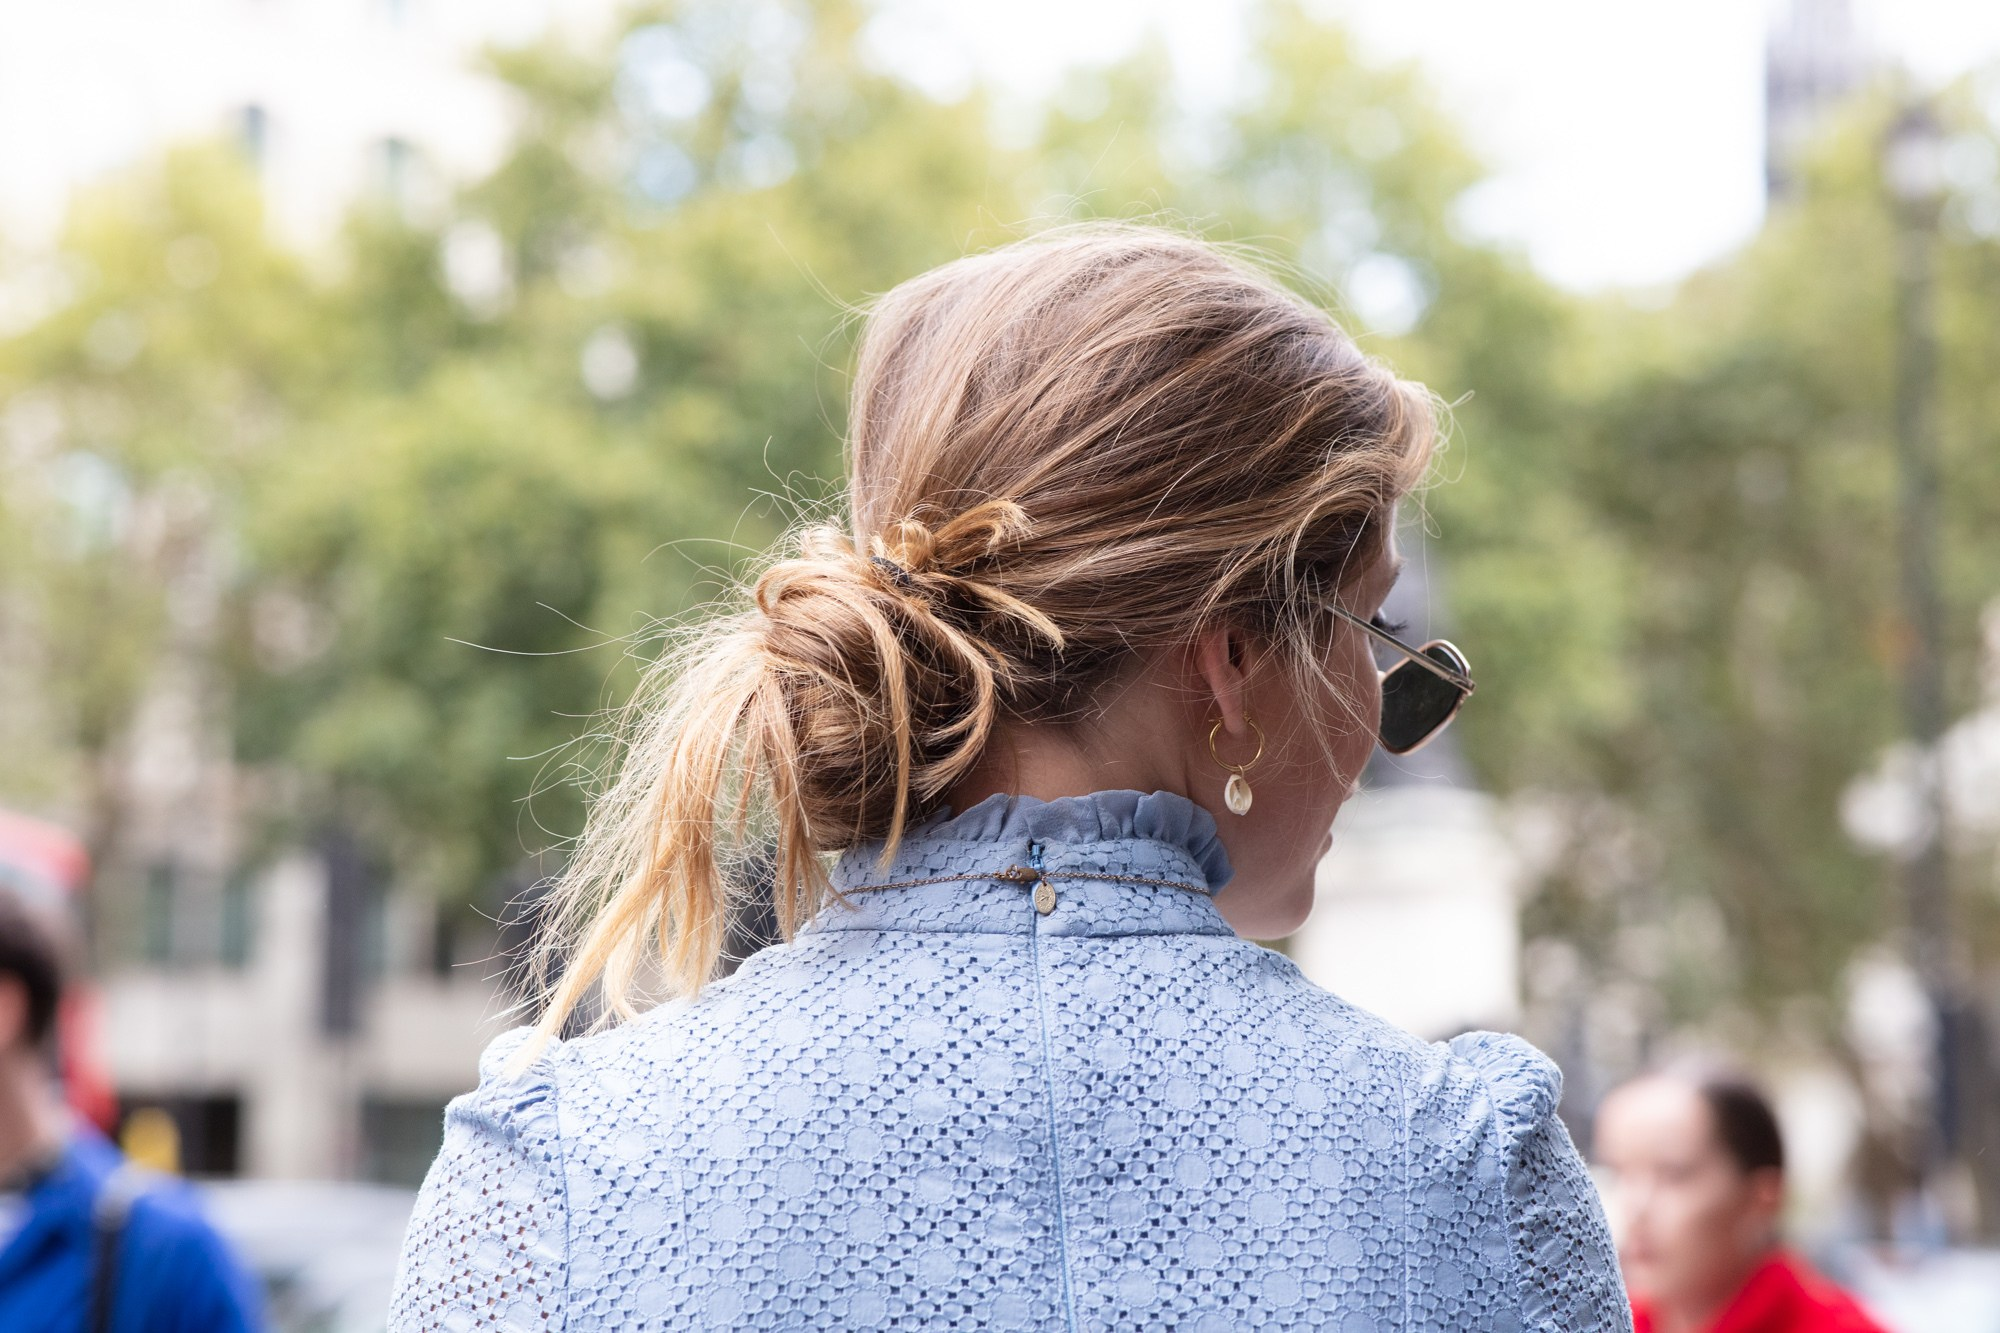 Hairstyles for thick hair: Woman with dirty blonde hair styled into a messy low bun wearing blue polka dot dress